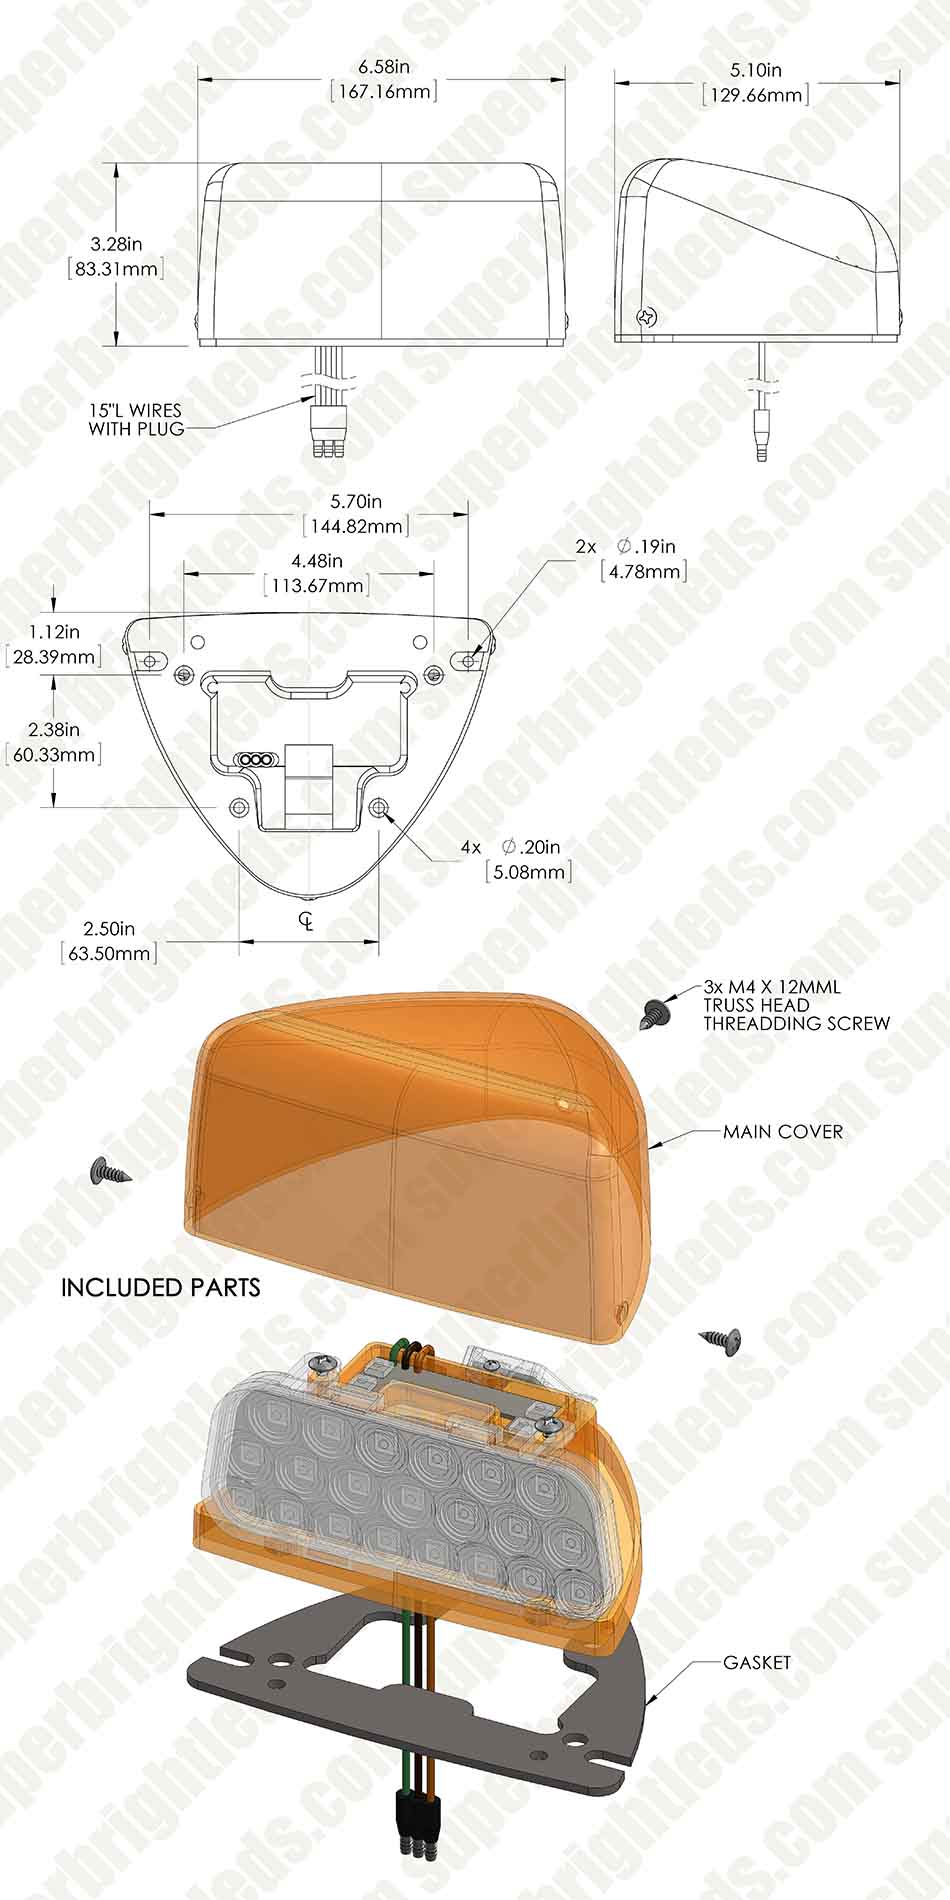 peterbilt turn signal wiring wiring library diagram boxtriangle led turn signal light for peterbilt 379 trucks bullet bmw turn signal peterbilt turn signal wiring